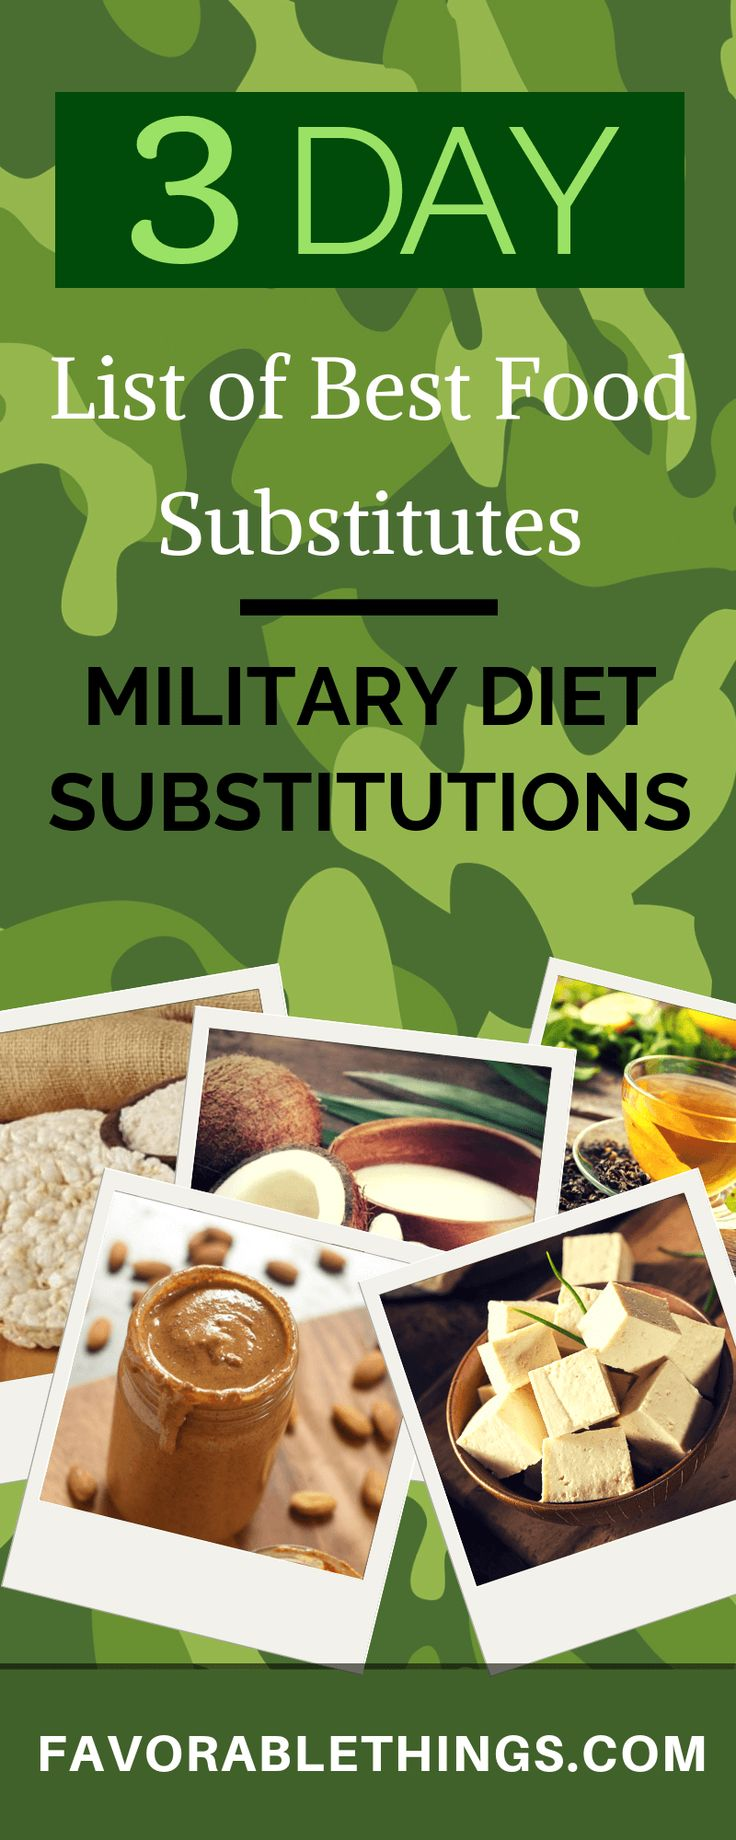 3 Day Military Diet Substitutions: List of Best Food Substitutes